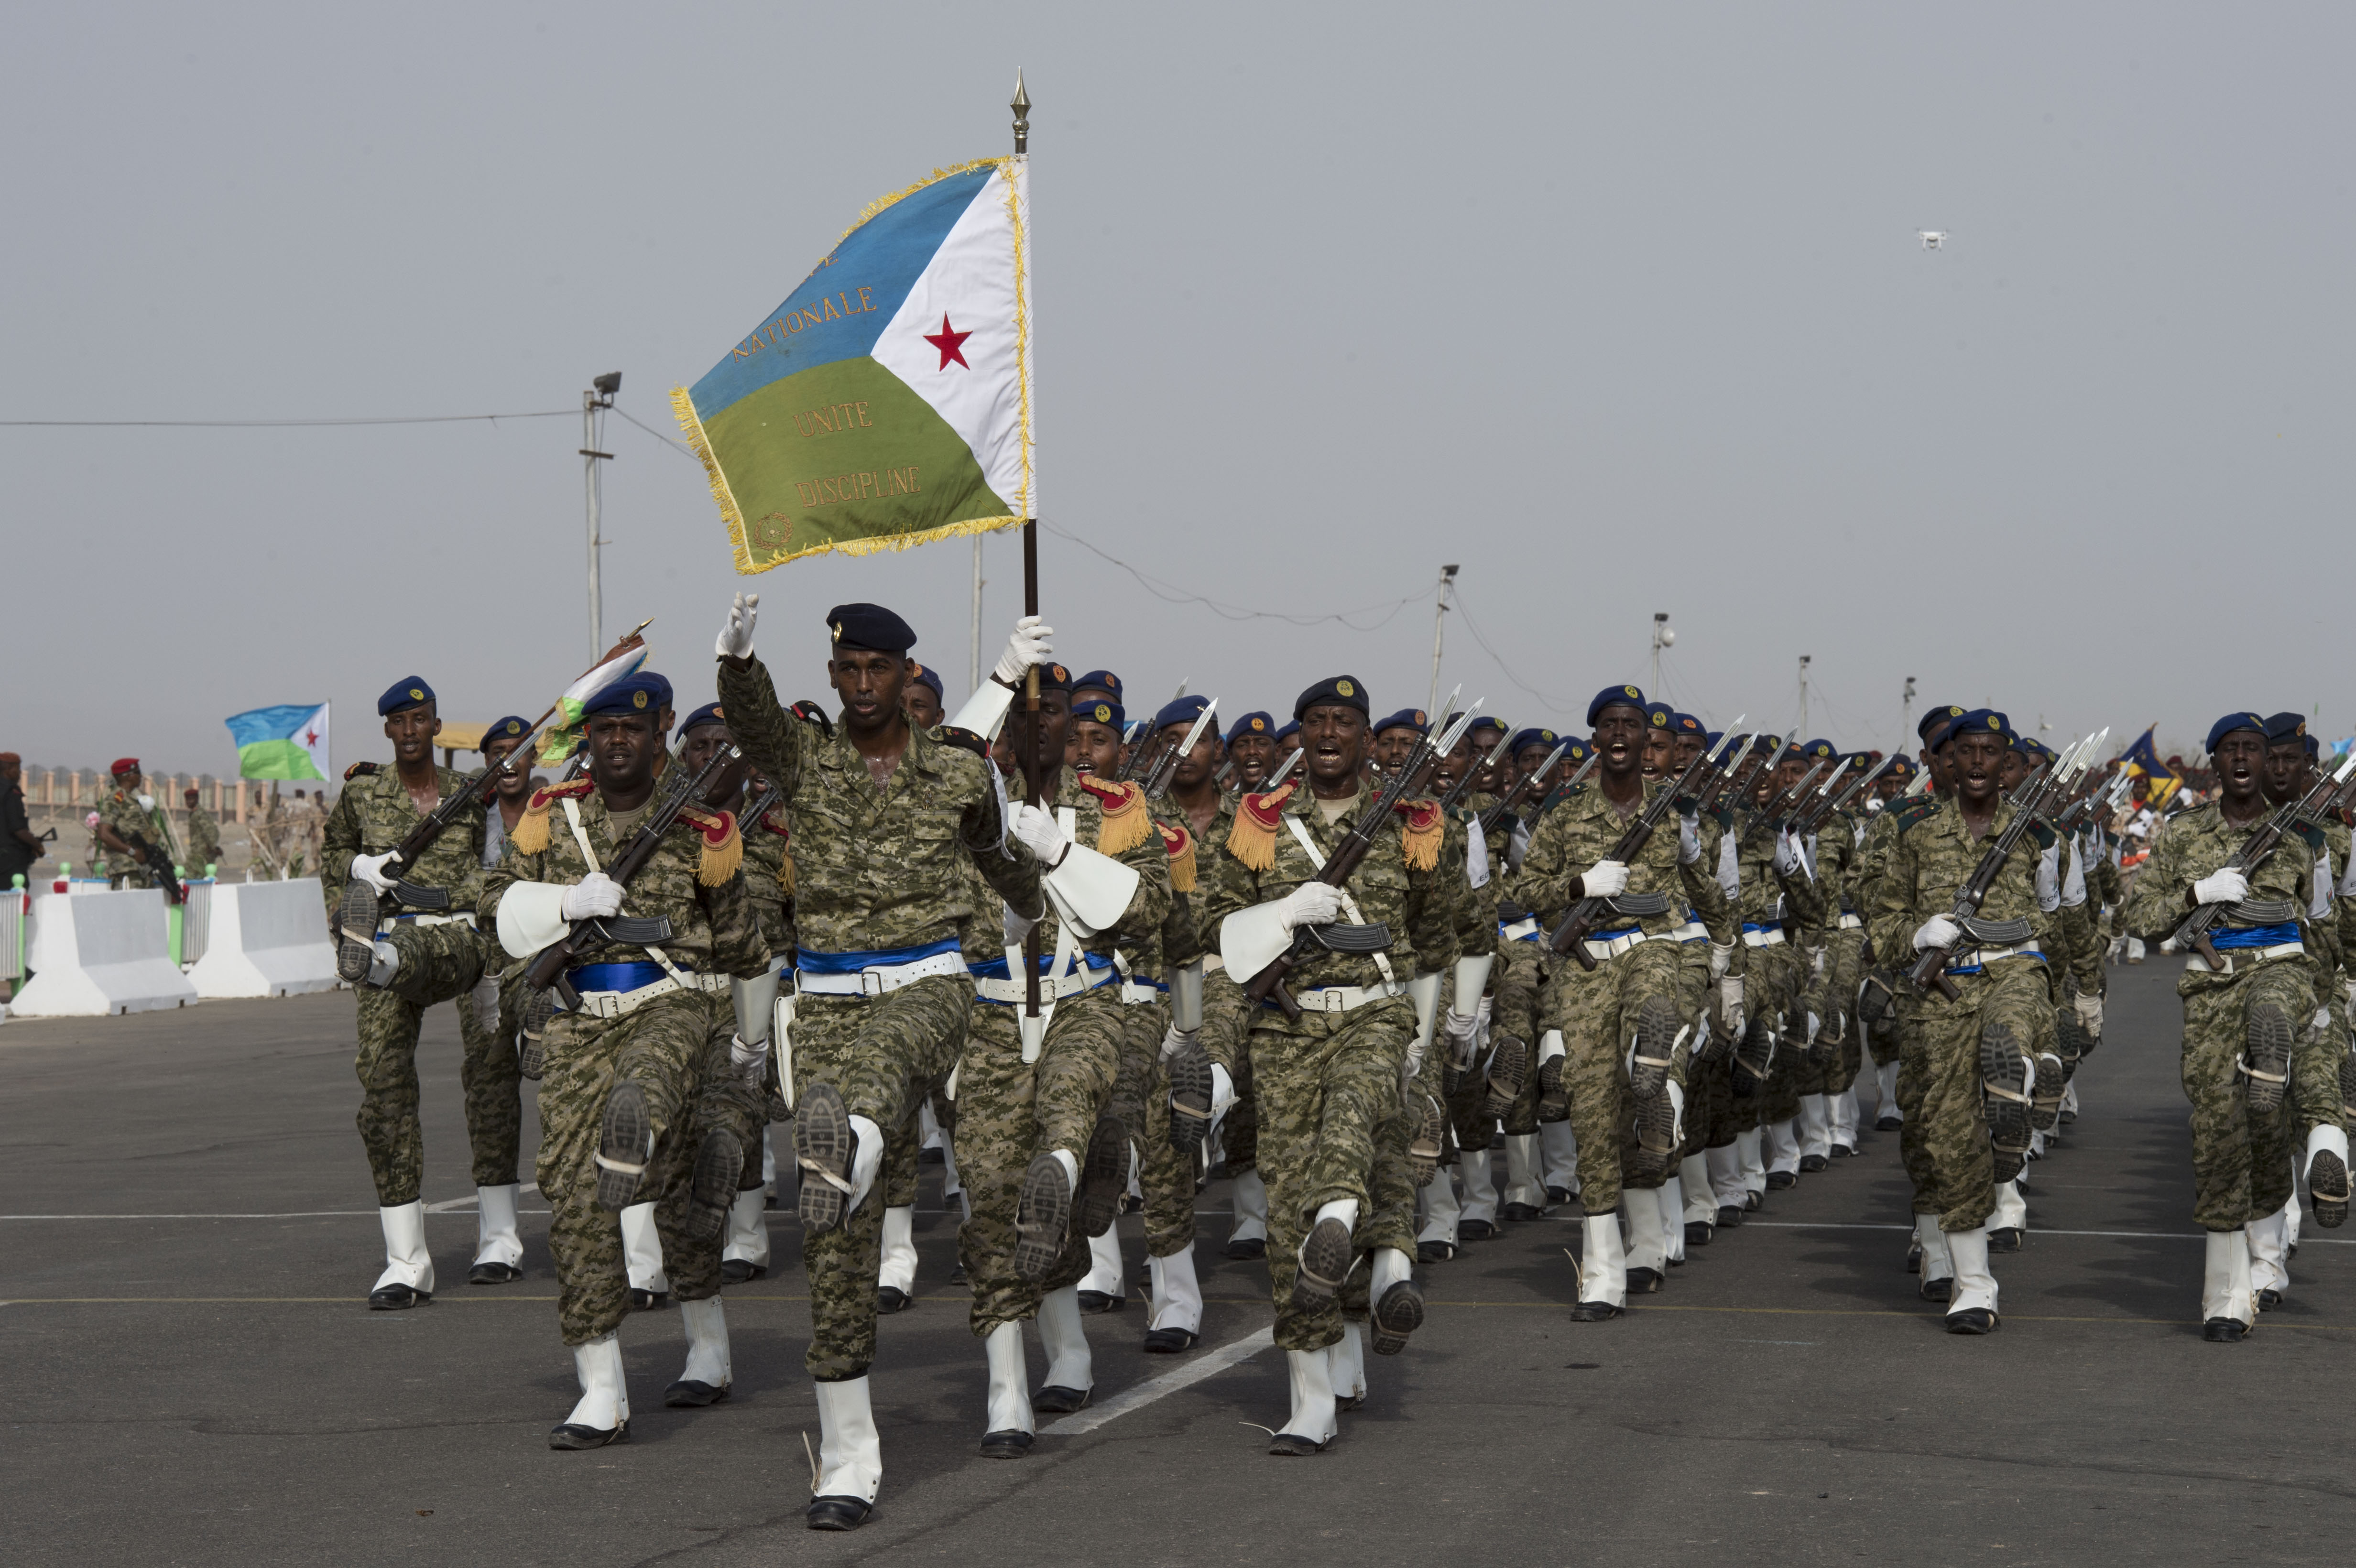 Members of the Djiboutian Armed Forces march in sync during the Djibouti Independence Day parade June 27. 2016, at Djibouti. Service members from all Djiboutian military branches participated in the parade along with law enforcement. (U.S. Air Force photo by Staff Sgt. Eric Summers Jr.)